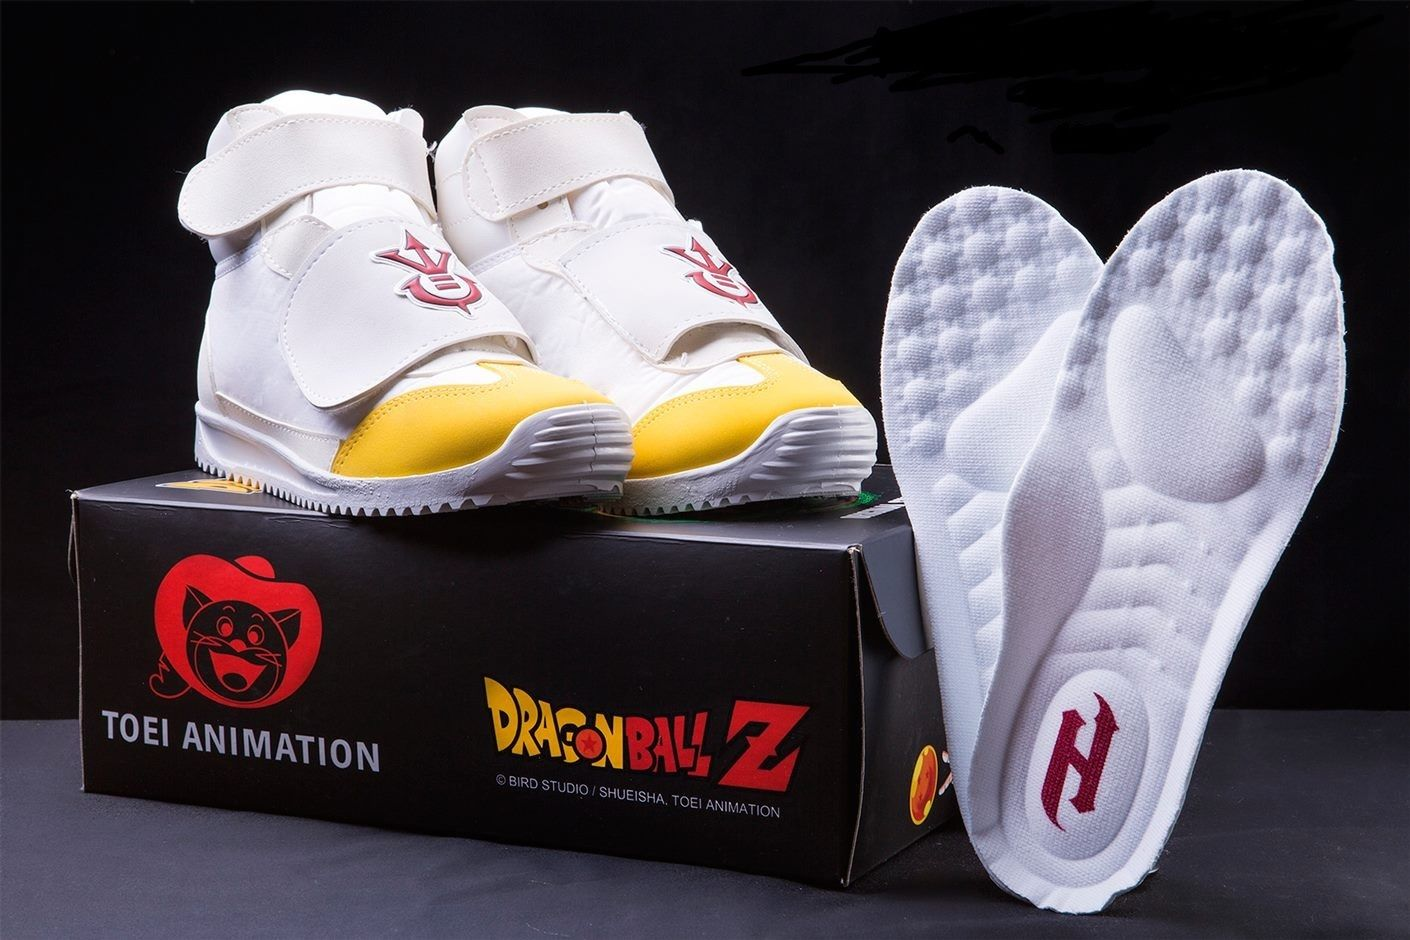 yes-there-are-actually-official-dragon-ball-z-sneakers-2-146902